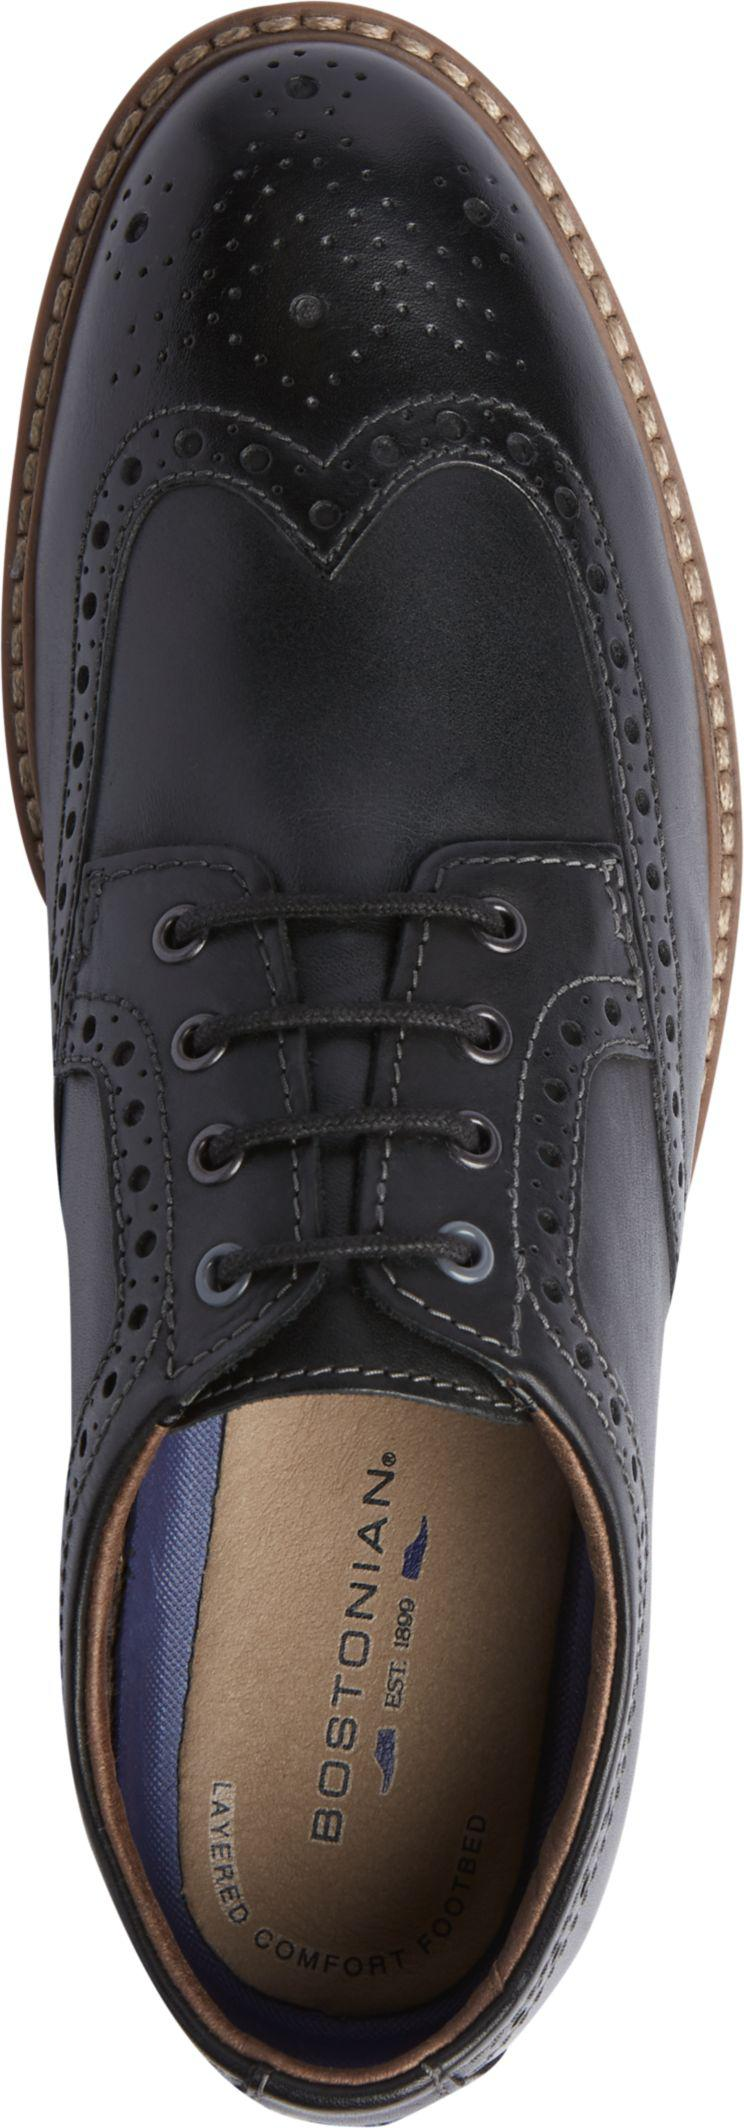 430ed1bc7b Lyst - Jos. A. Bank Bostonian Armon Wingtip Oxfords in Black for Men